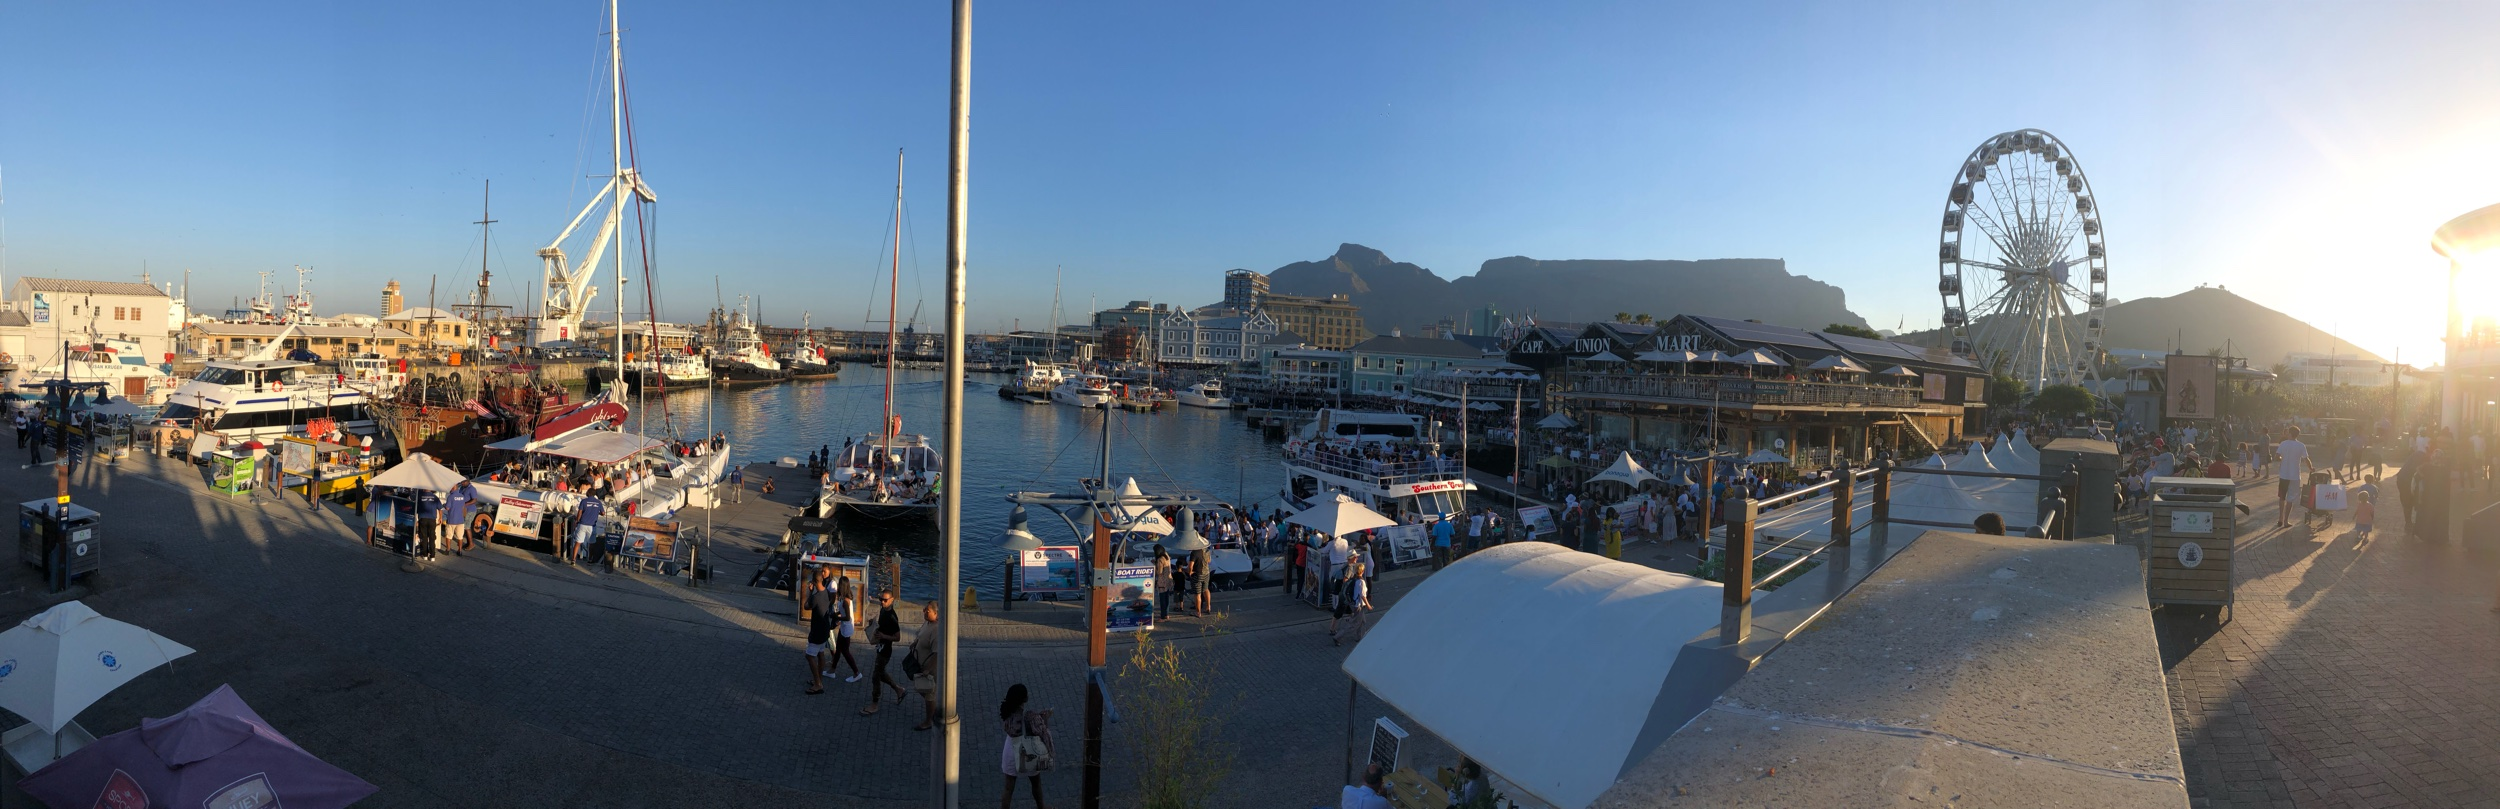 Panorama View of VA Waterfront Cape Town